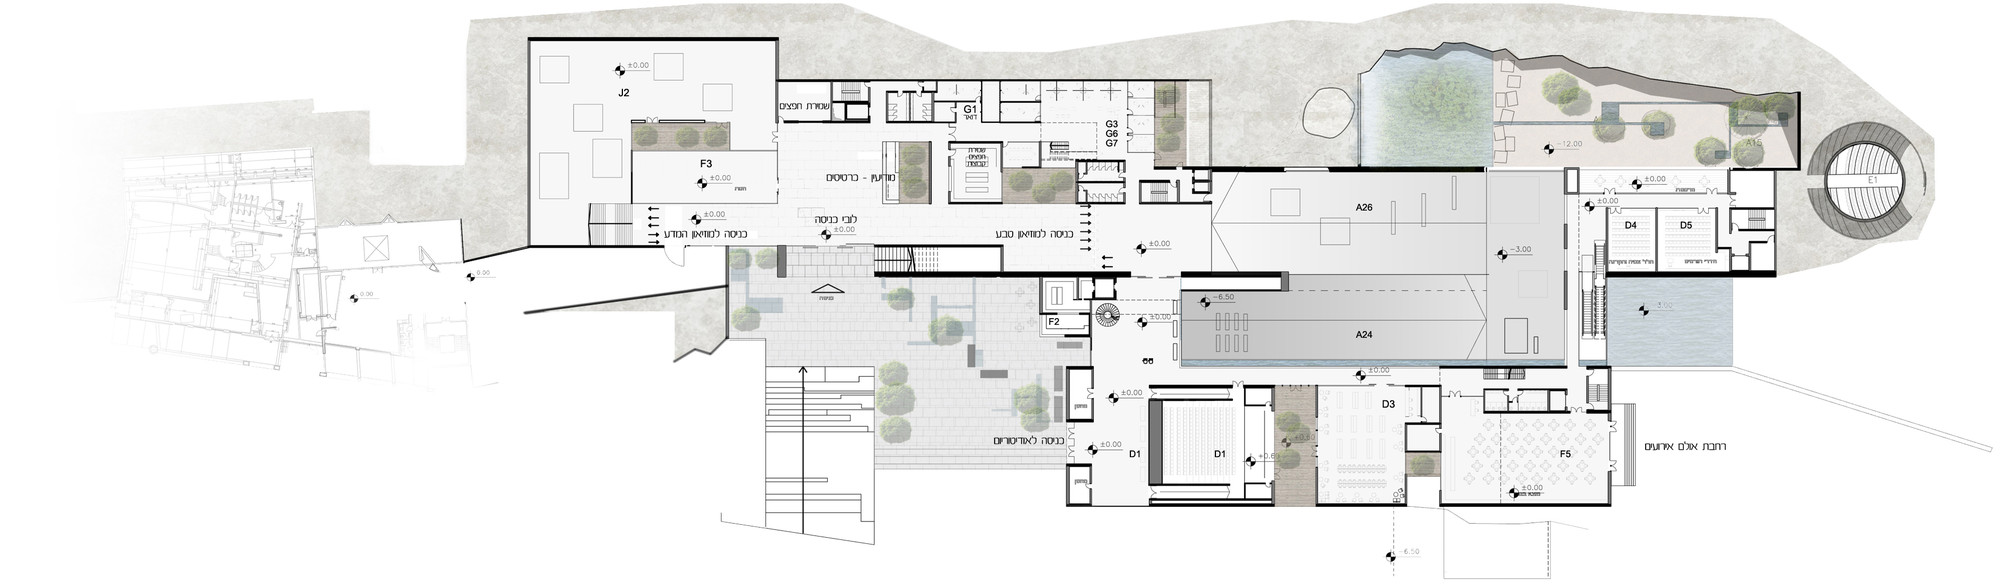 gallery architecture plan - photo #14